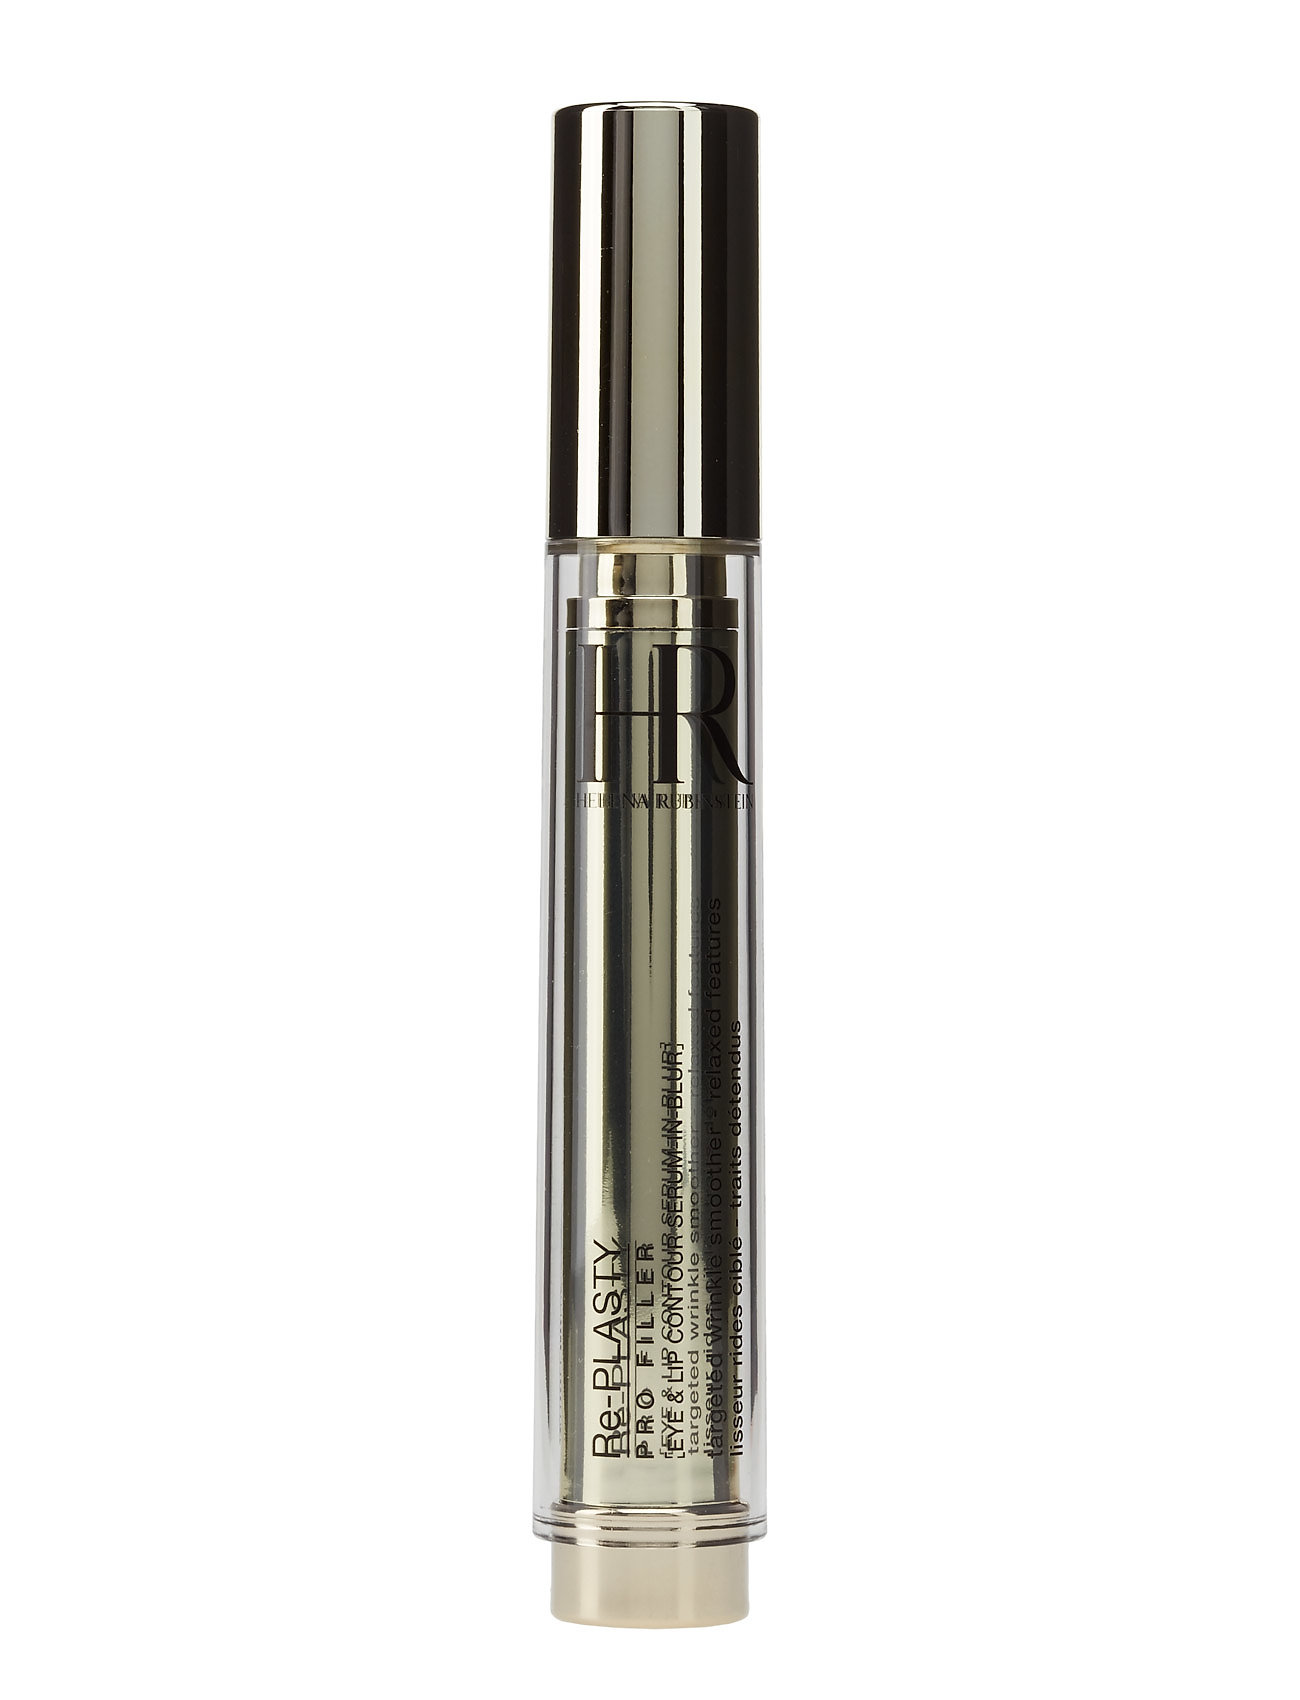 Image of Re-Plasty Pro-Filler Eye & Lip 15 Ml Læbepleje Makeup Creme Helena Rubinstein (3276248685)